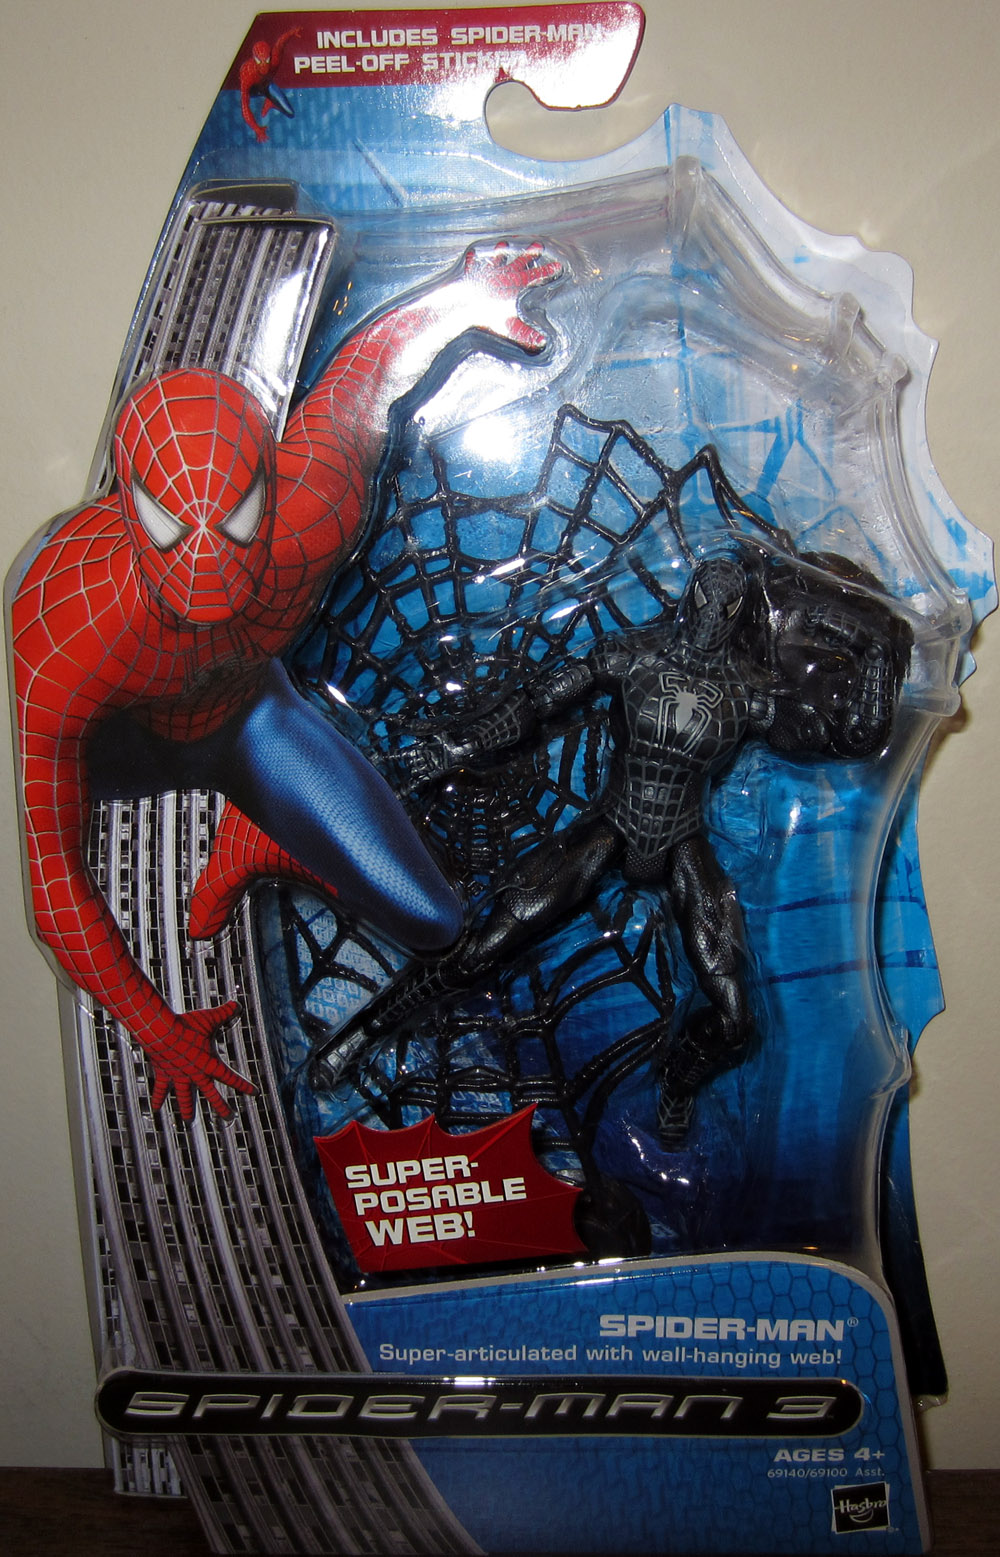 spiderman-superarticulatedwithwallhangingweb-sm3.jpg